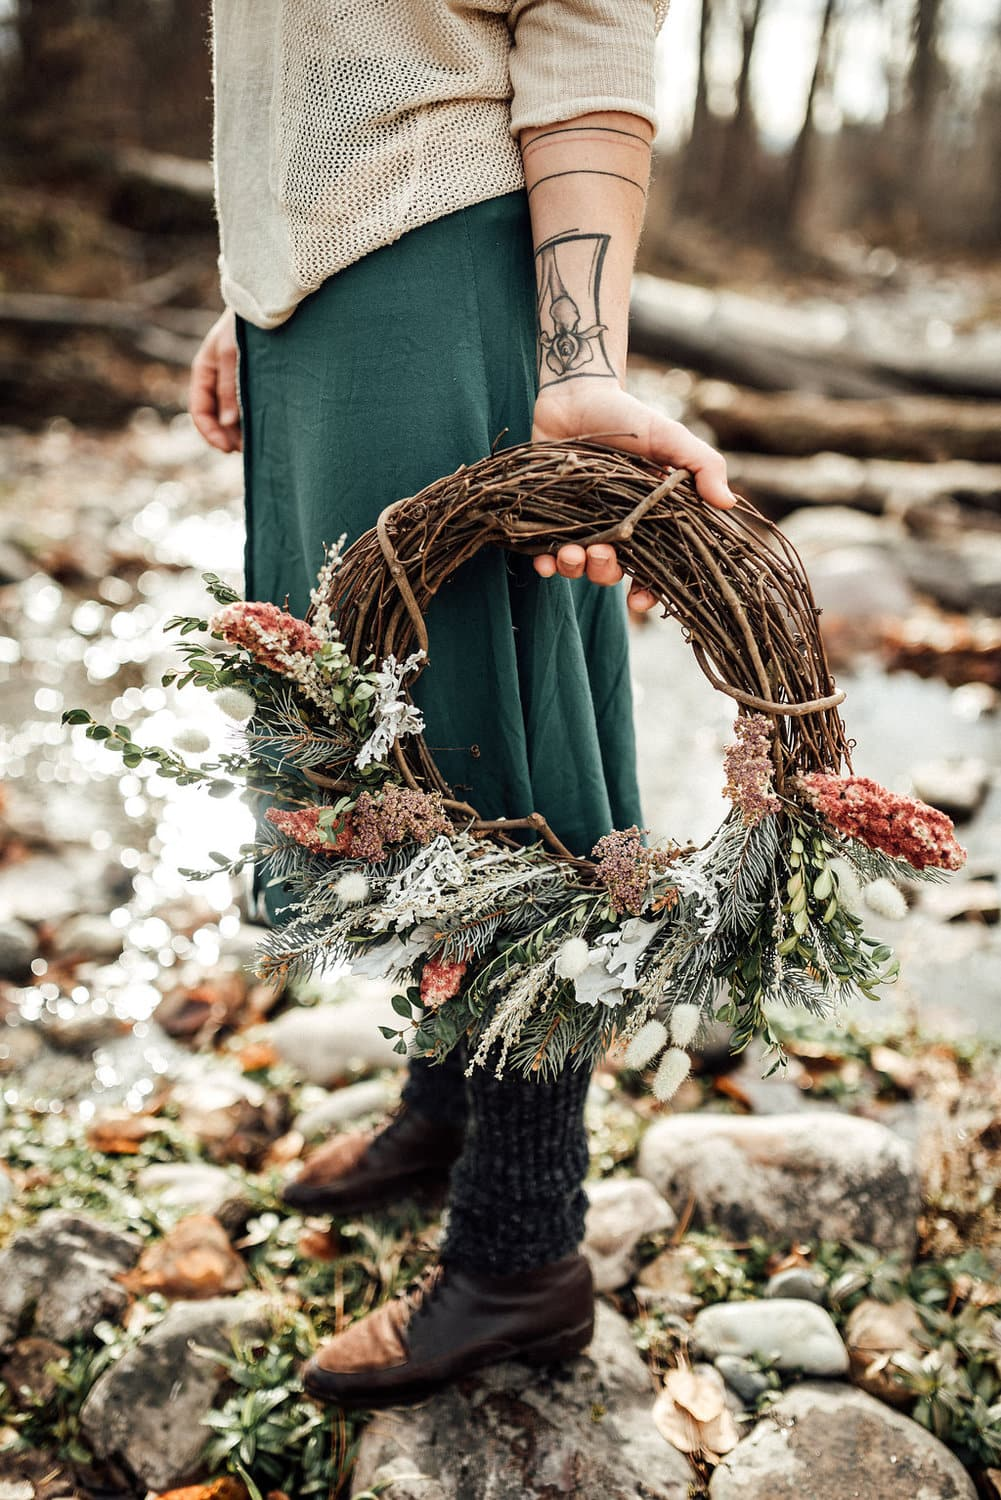 winter wreath made in missoula, Montana with local grapevine, sage, cedar and sumac